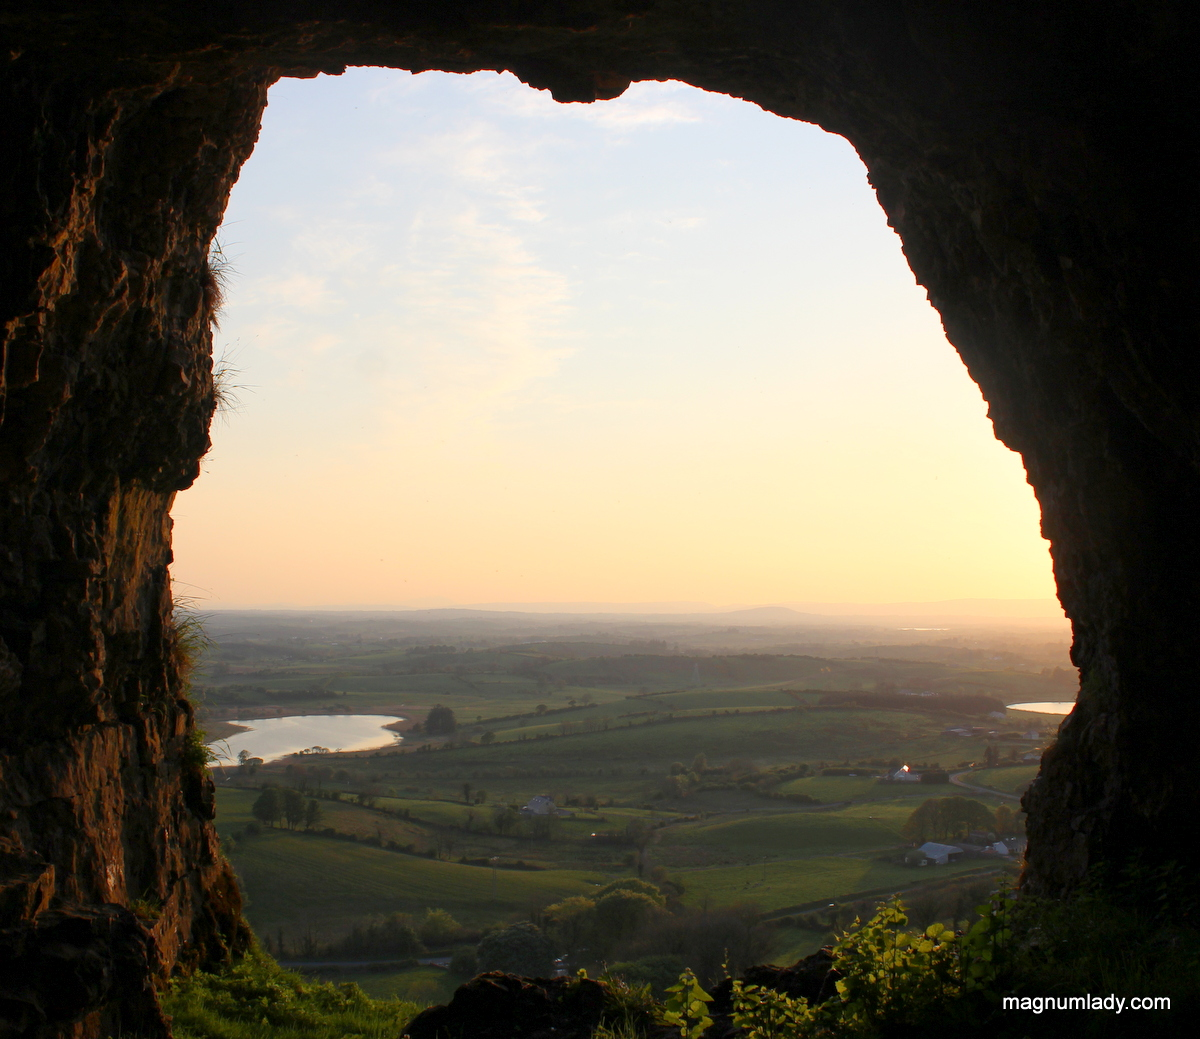 View from the Caves of Keash